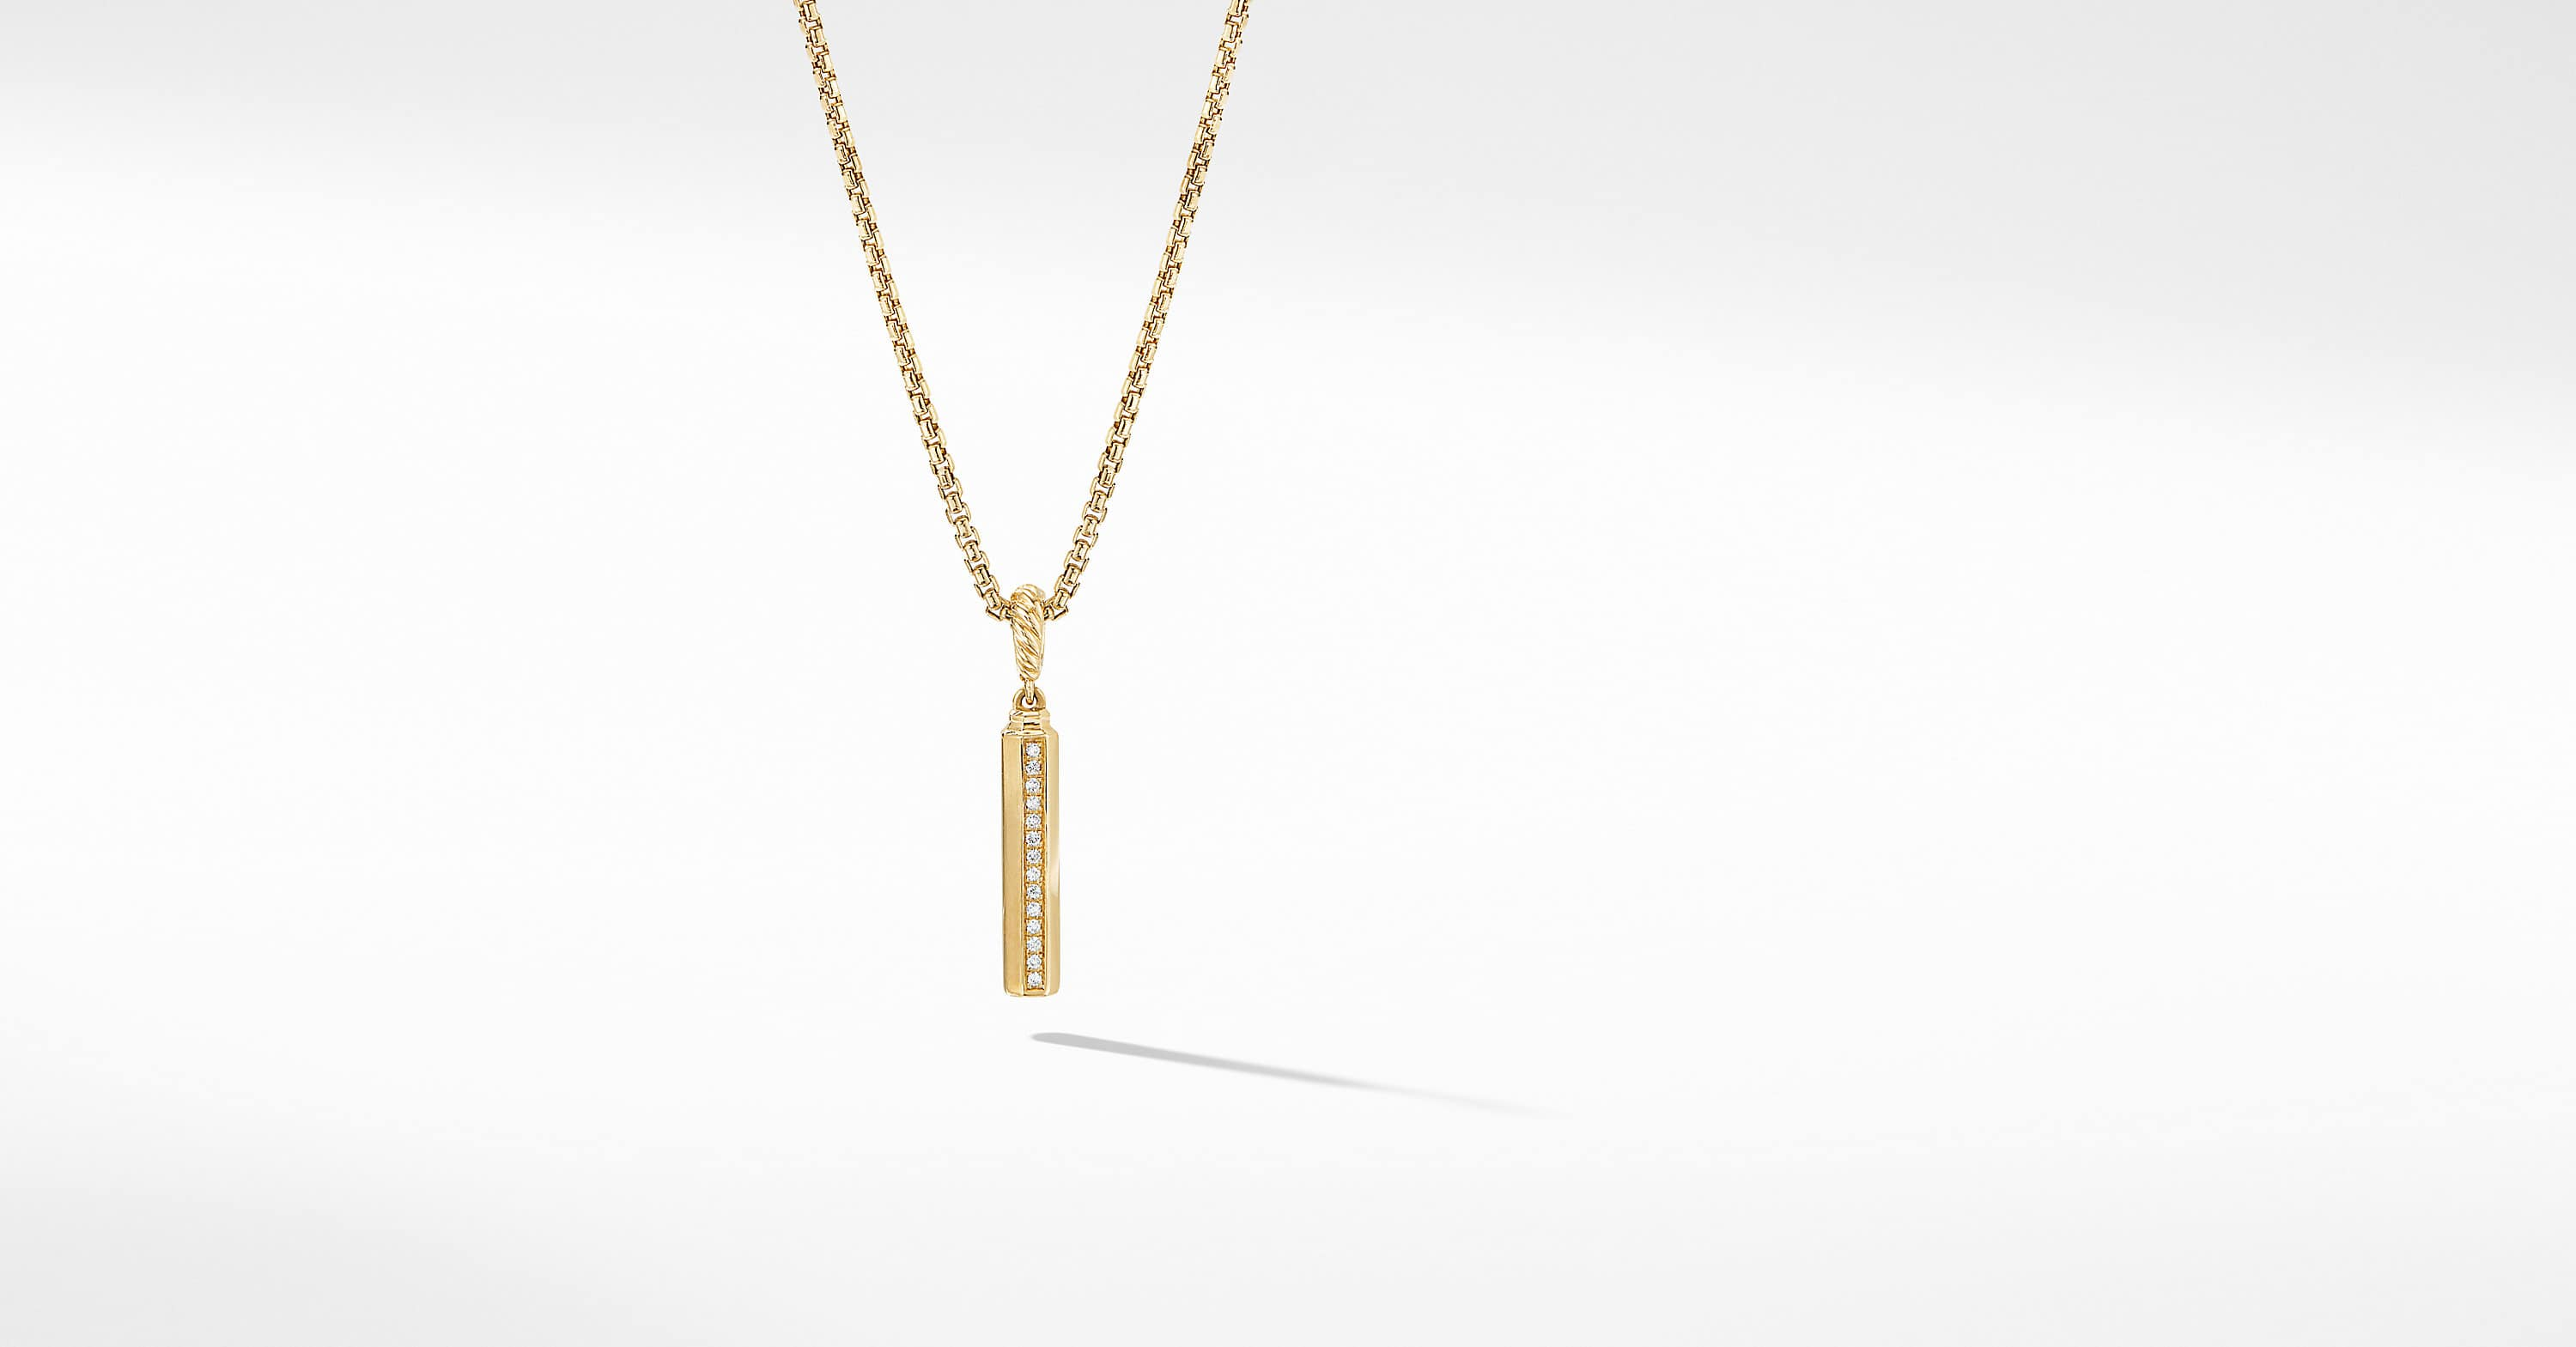 Barrels Charm Pendant in 18K Yellow Gold with Diamonds